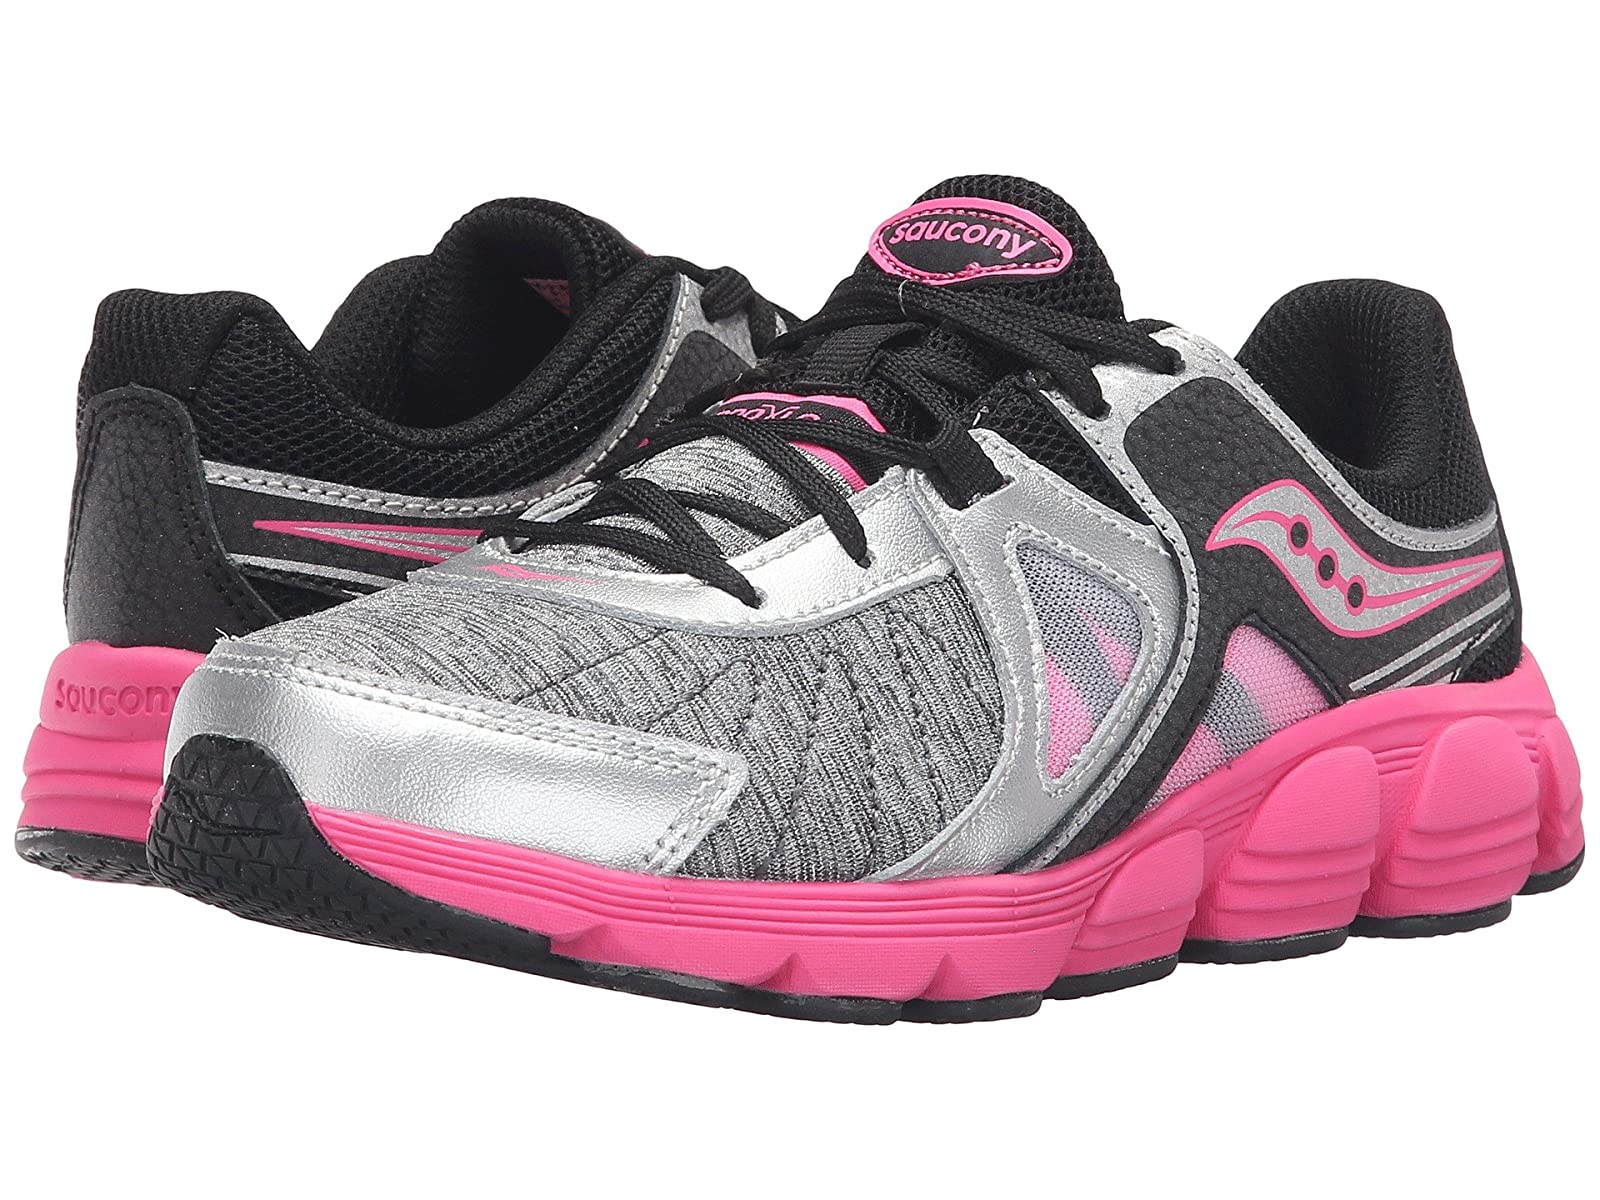 Saucony Kids Kotaro 3 (Little Kid)Cheap and distinctive eye-catching shoes